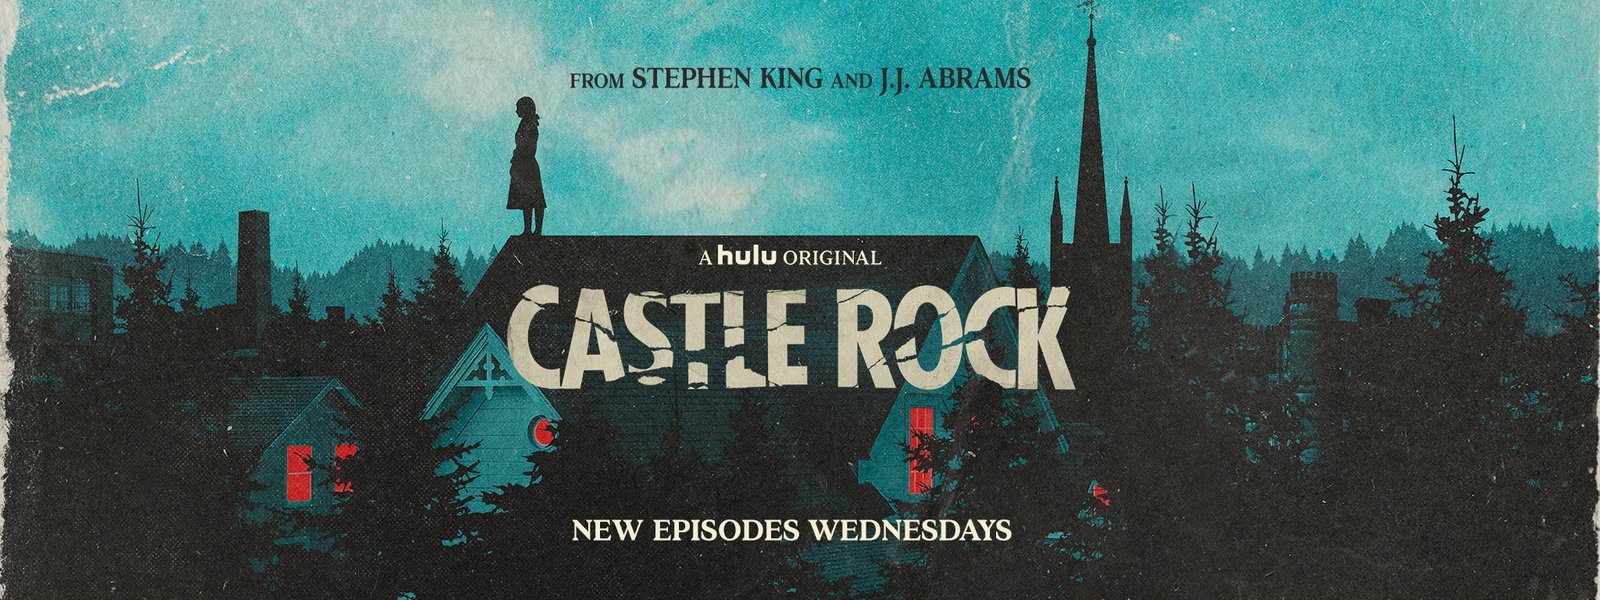 We are so excited!! Tune in to Hulu on July 25th: #CastleRock